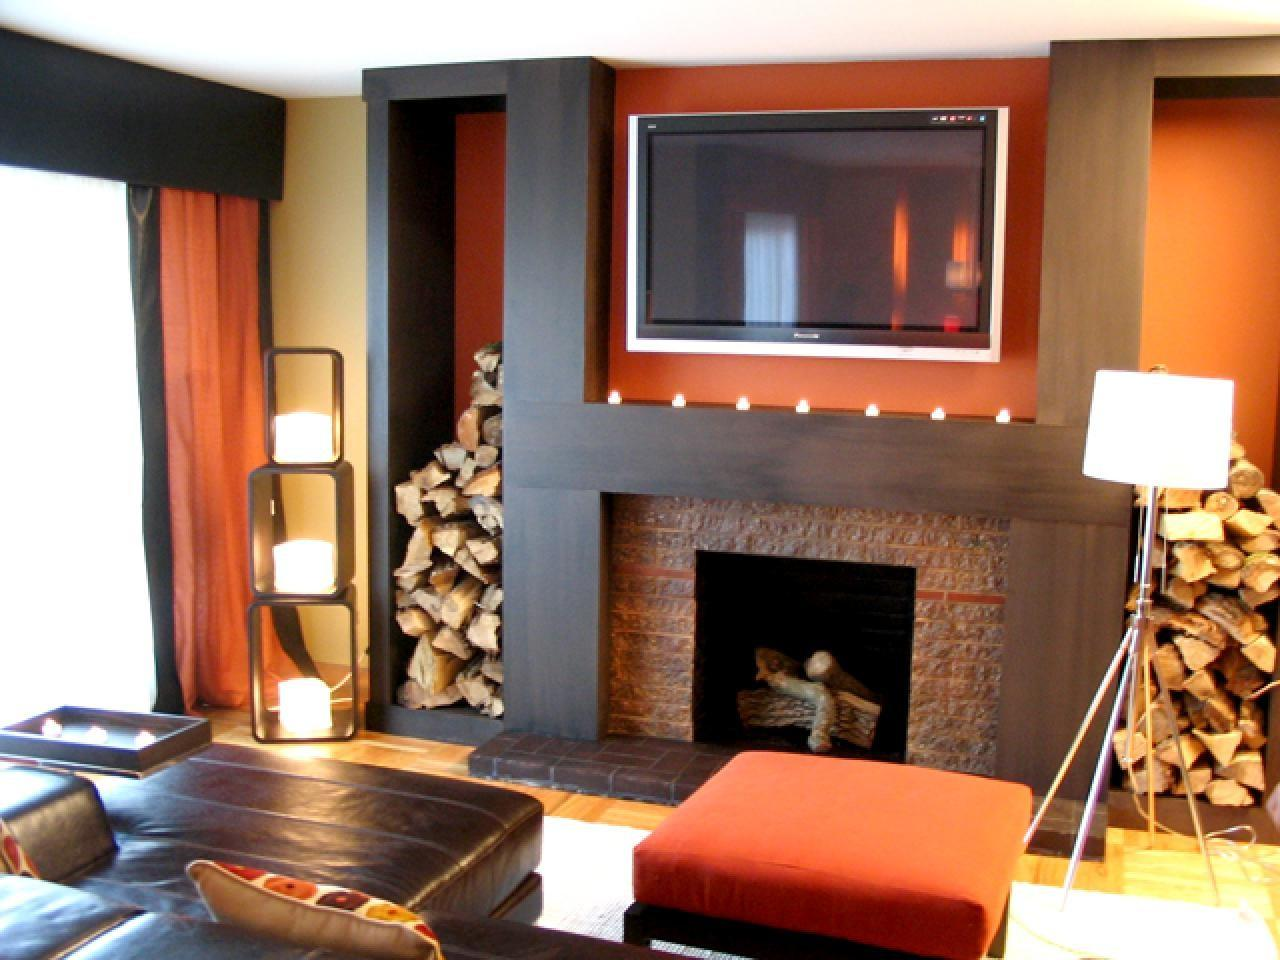 Inspiring Fireplace Design Ideas Summer Living Room